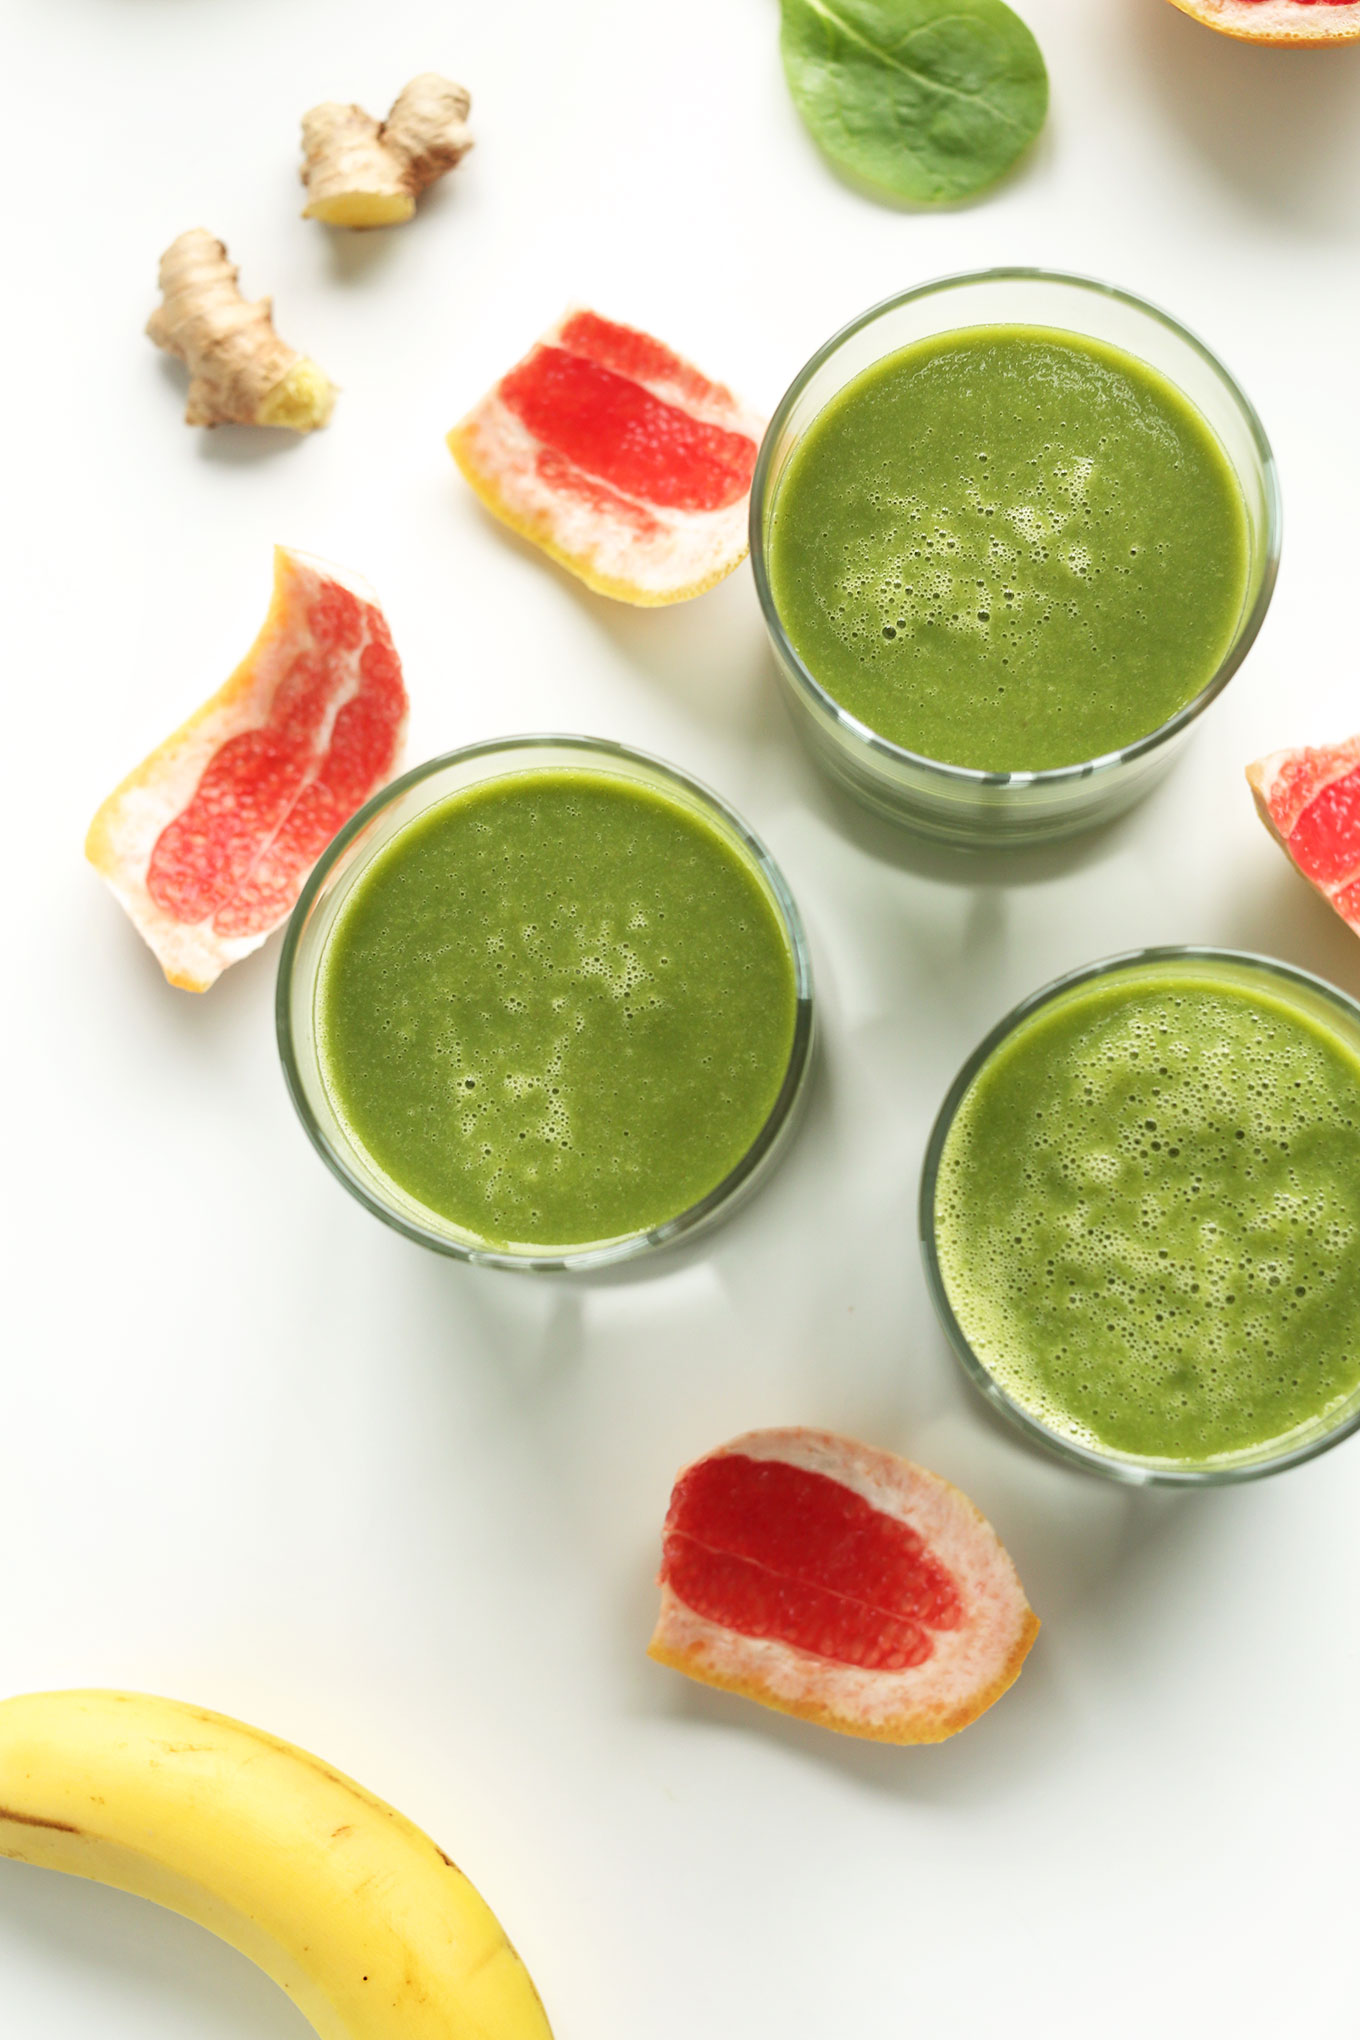 Glasses of our vegan gluten-free Grapefruit Green Smoothie